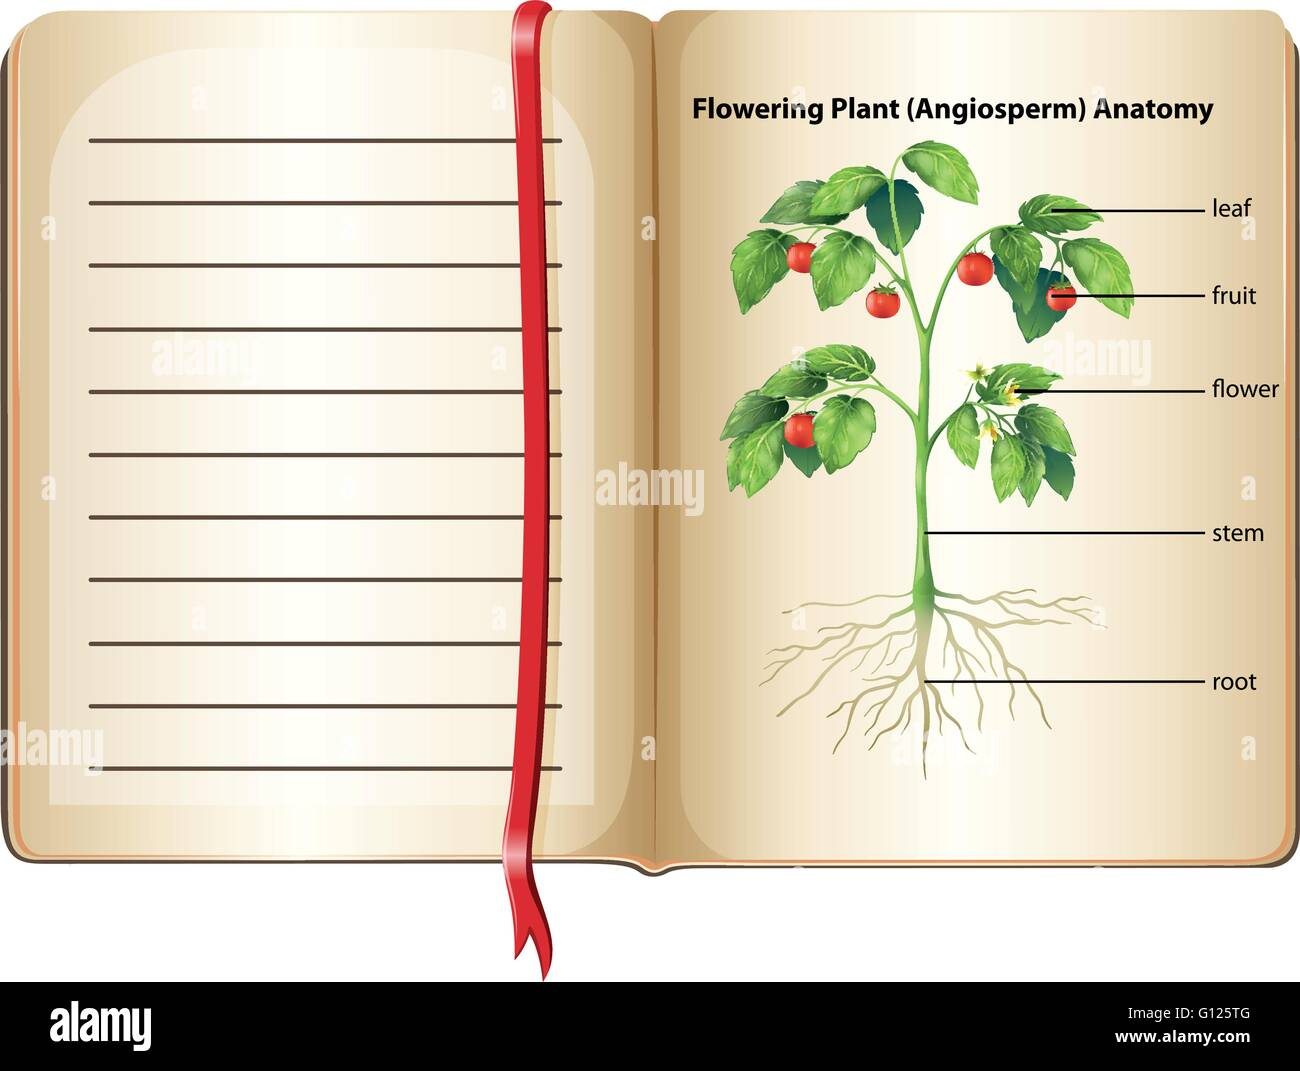 Flowering plant anatomy on page illustration Stock Vector Art ...